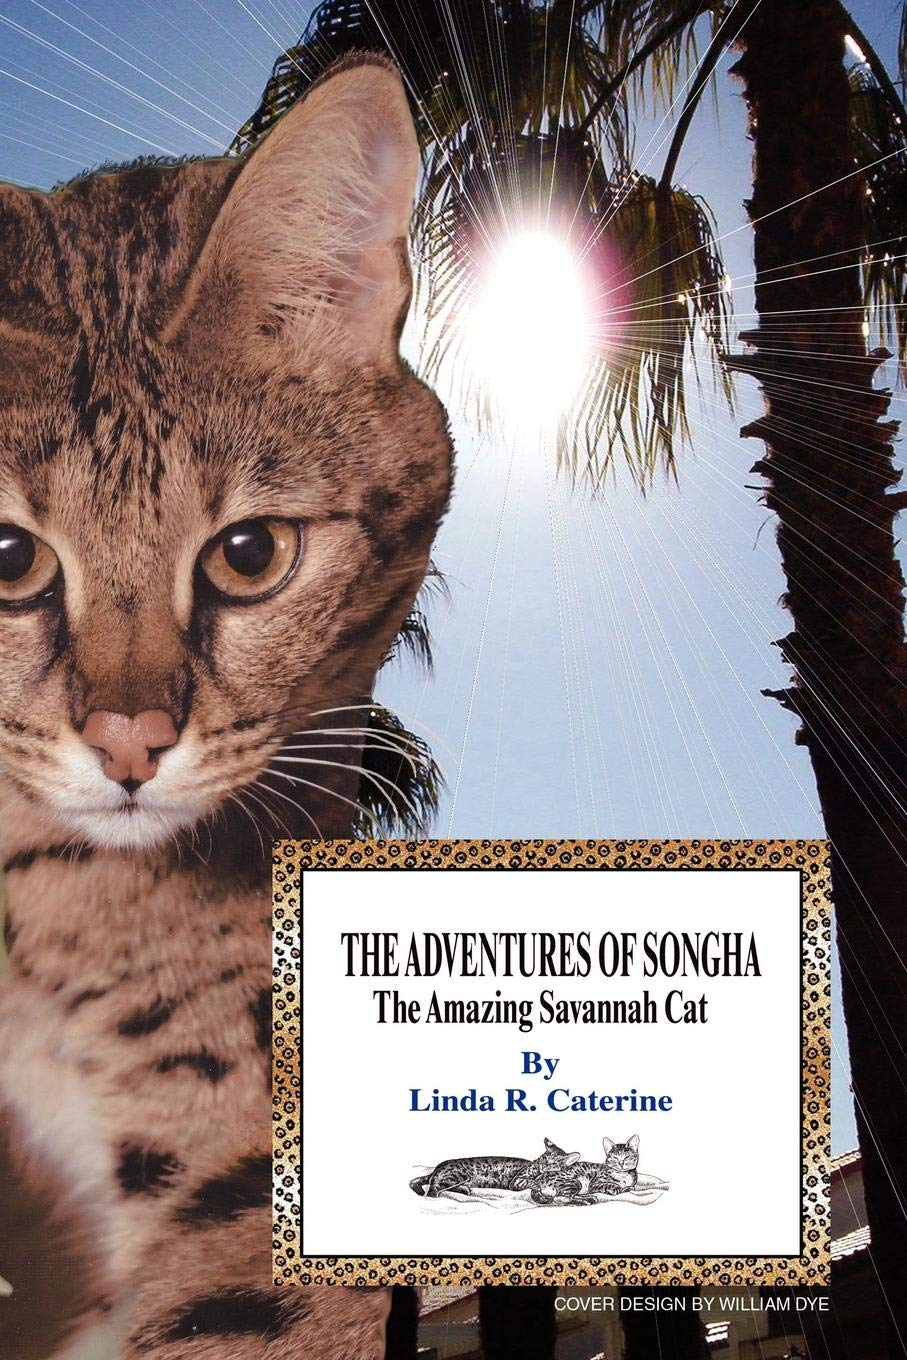 The Adventures of Songha: The Amazing Savannah Cat: Linda